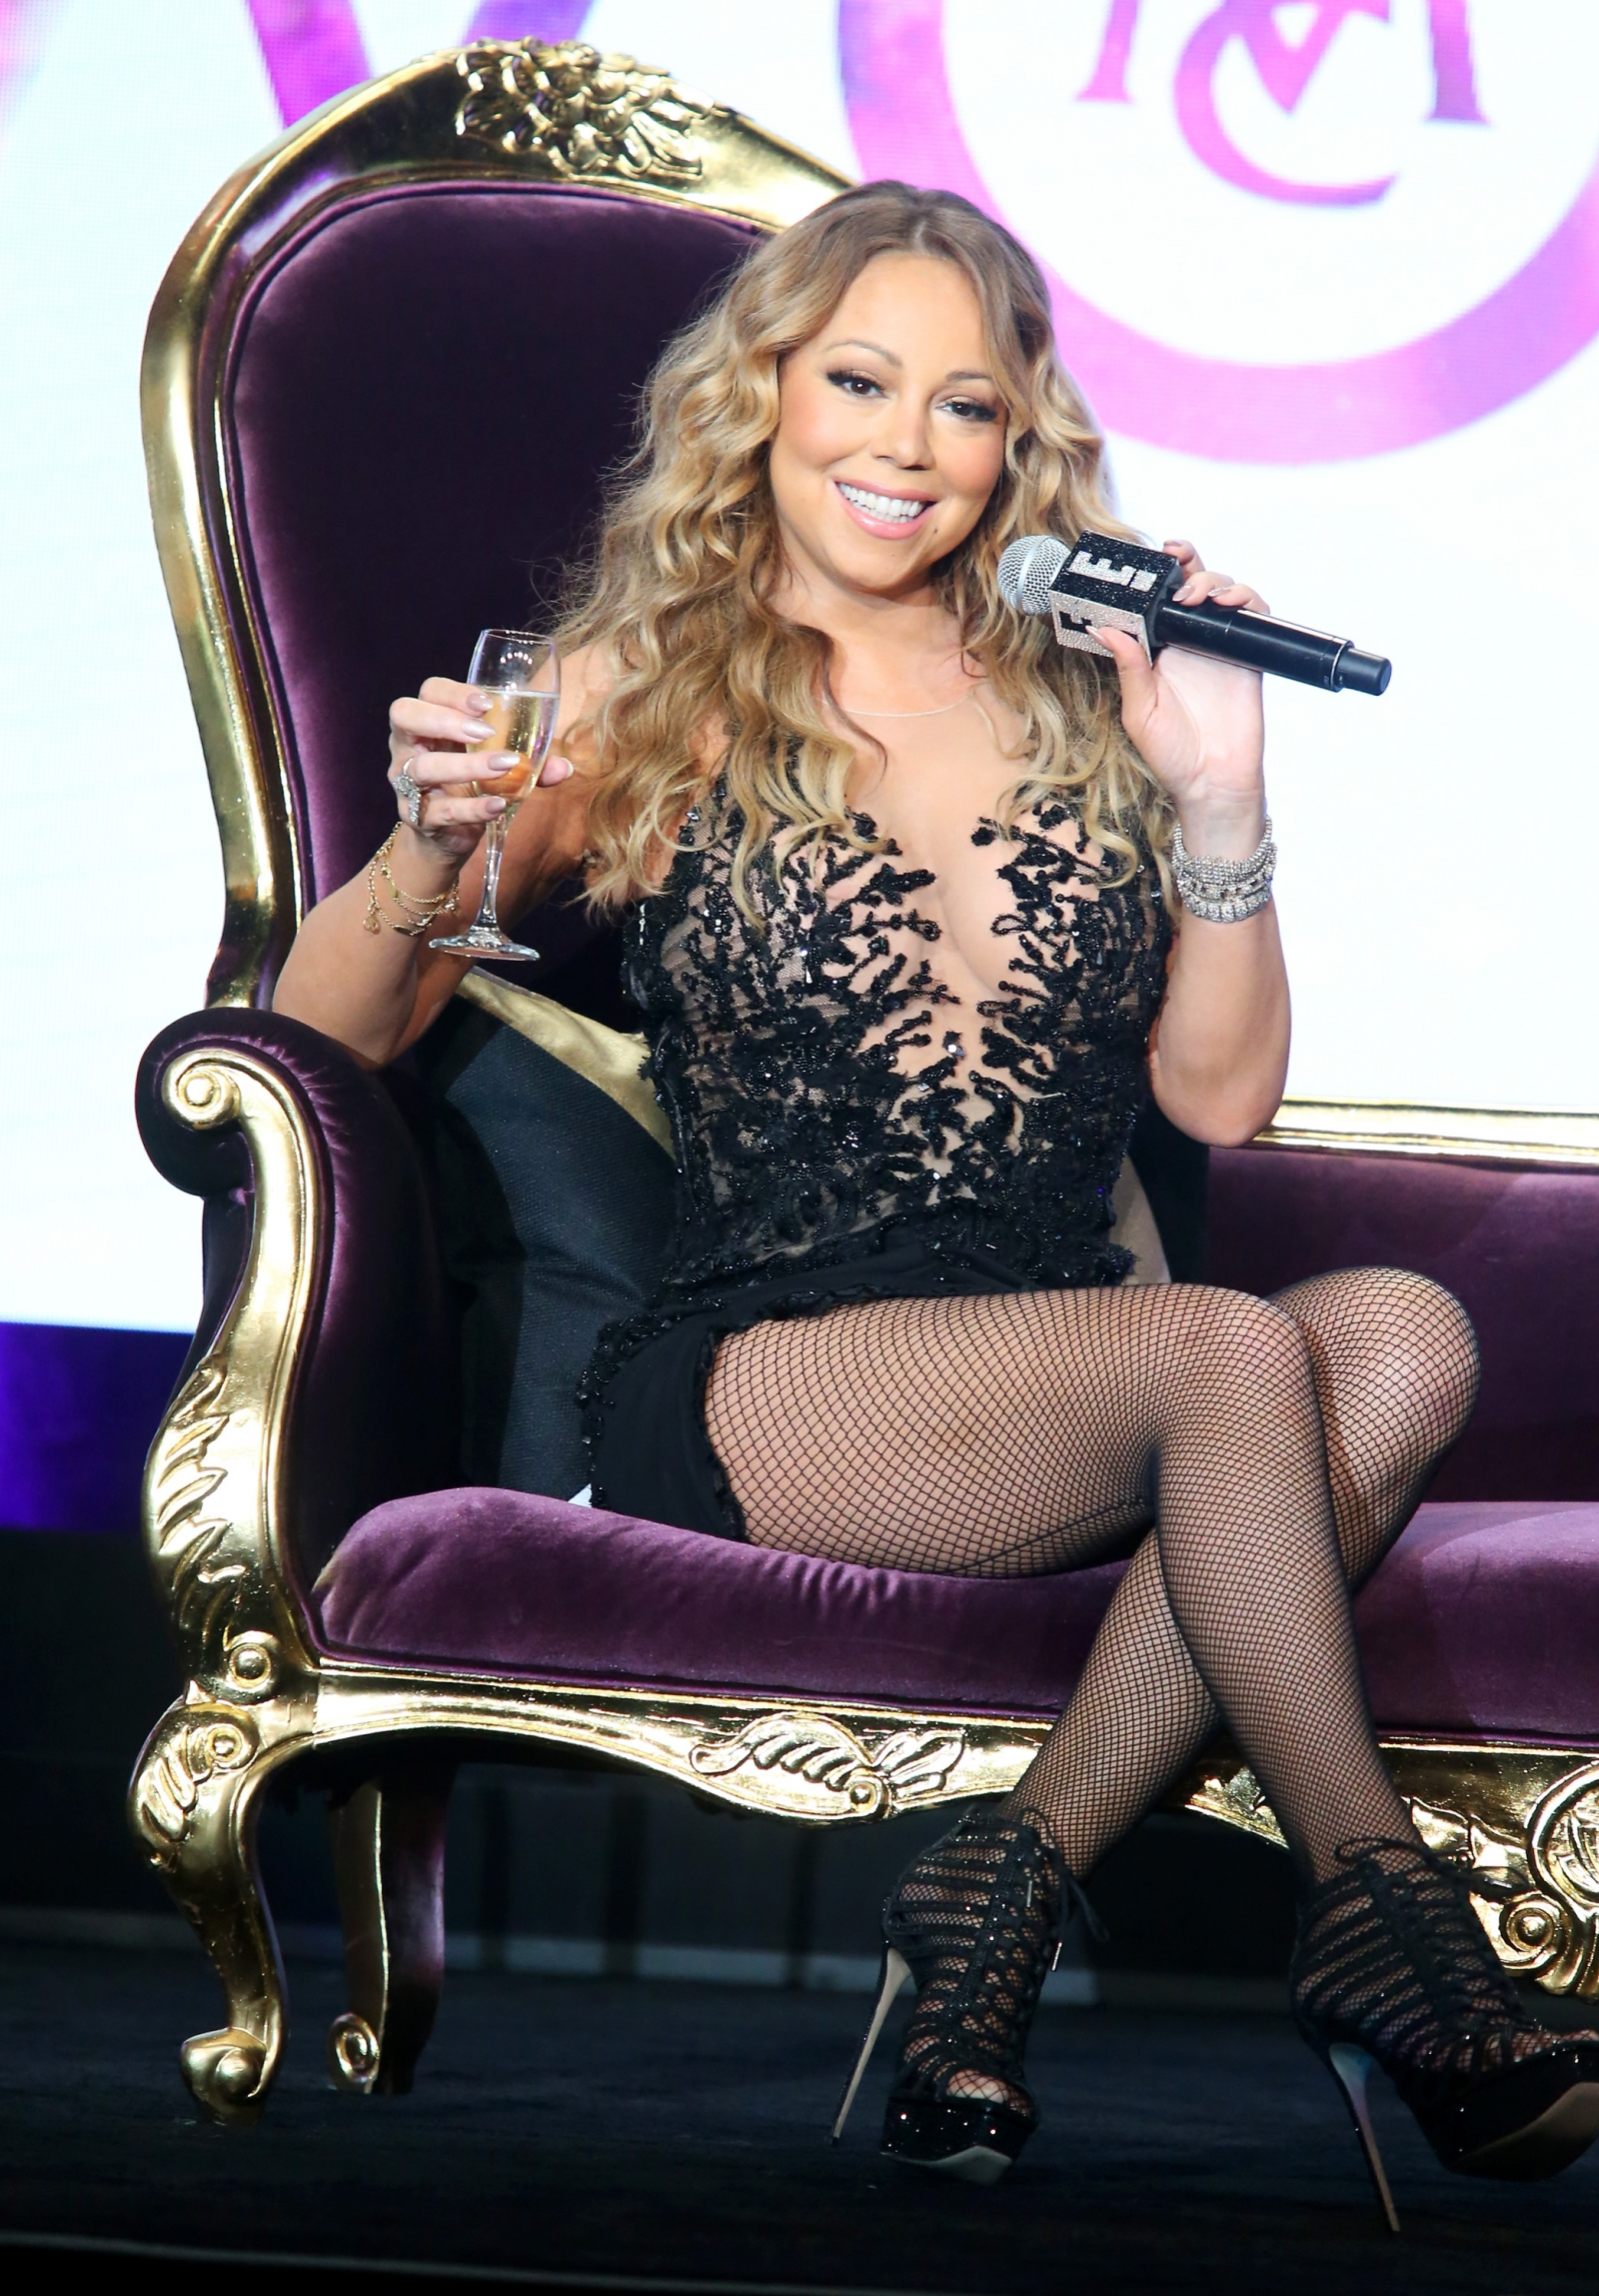 Mariah Carey and James Packer split: Singer stressed financial ...